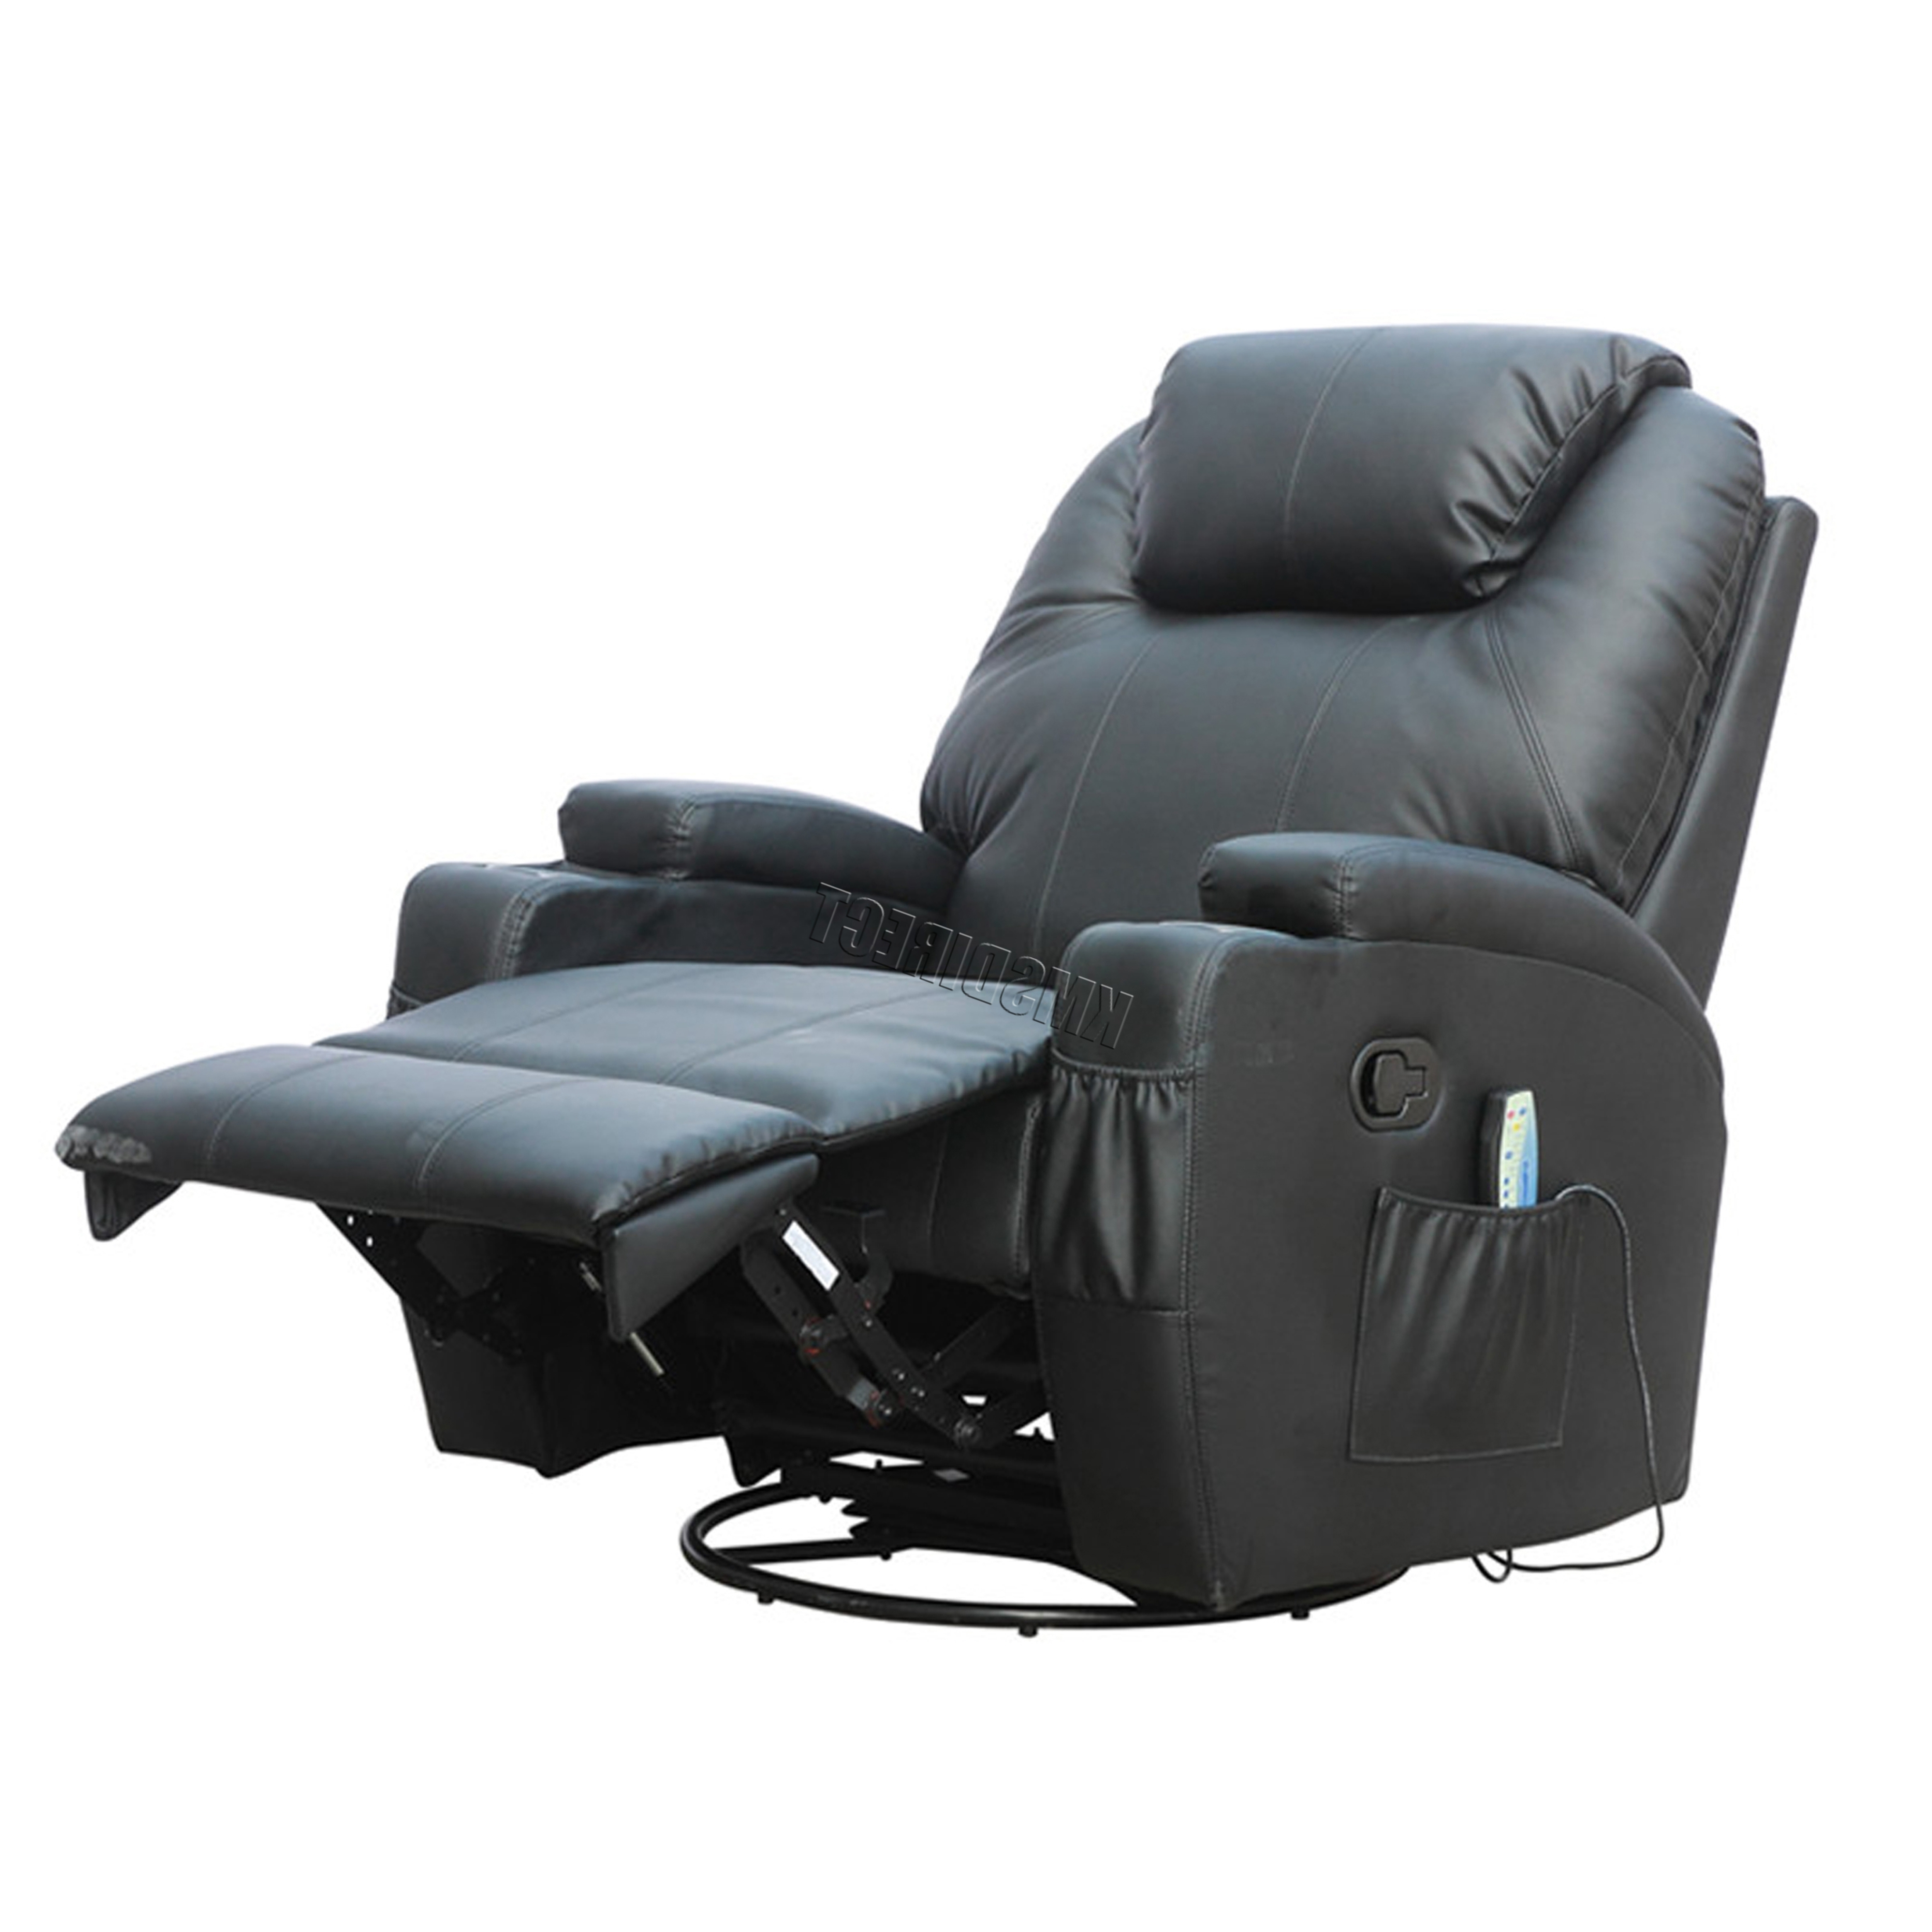 Preferred Gaming Sofa Chairs With Foxhunter Bonded Leather Sofa Massage Recliner Chair Swivel (View 7 of 20)